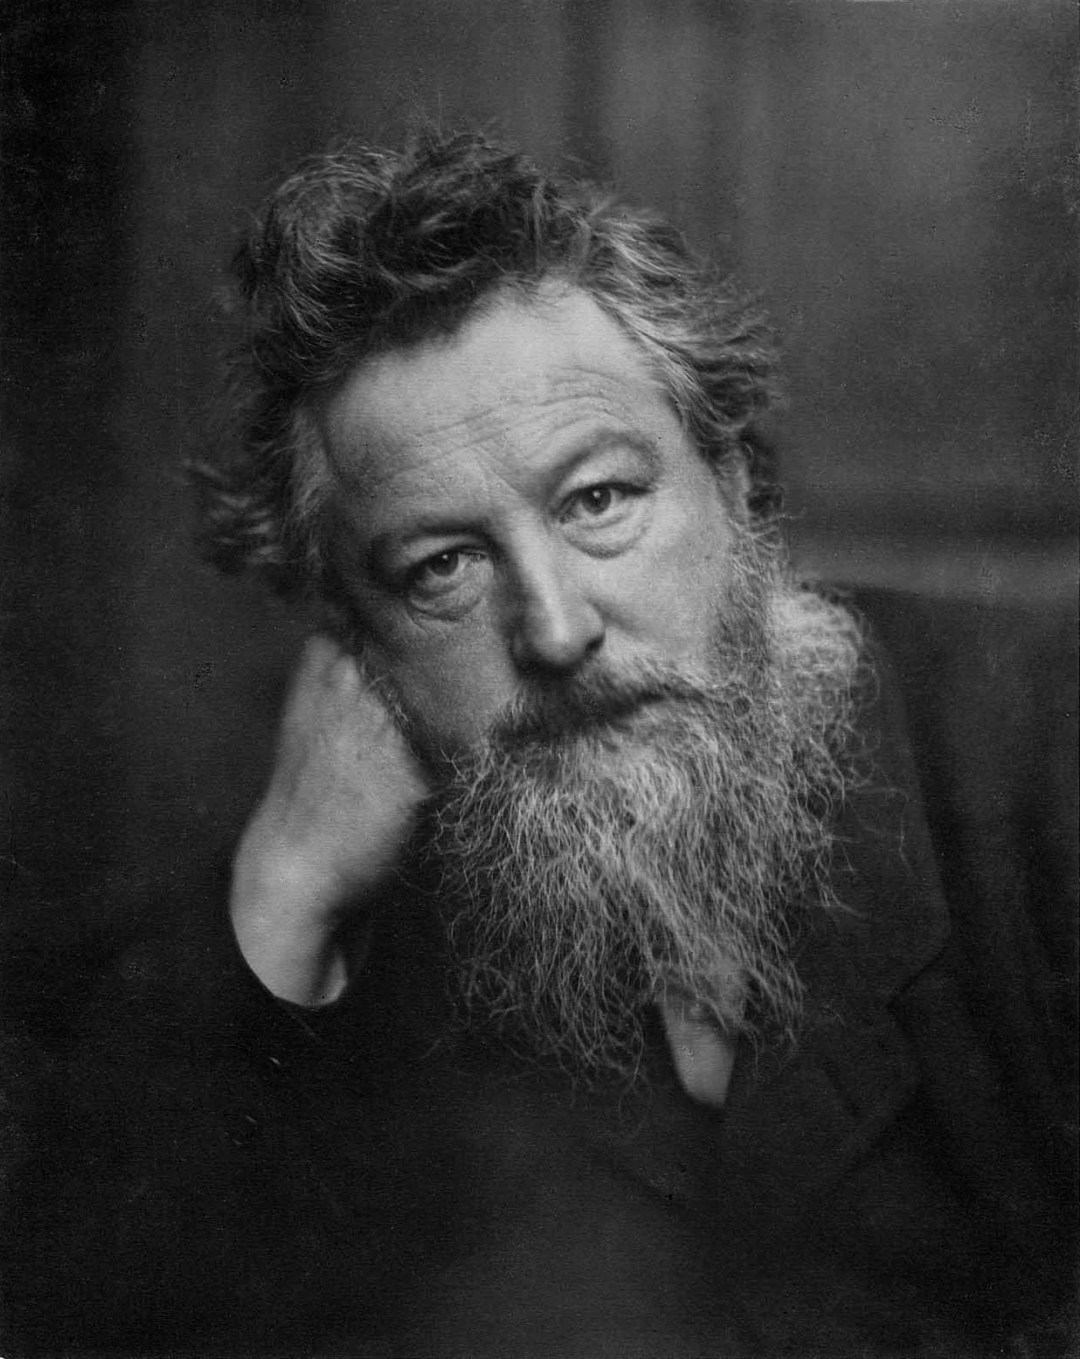 Black and white photograph of William Morris, an older man with a graying beard resting his head on his right fist.